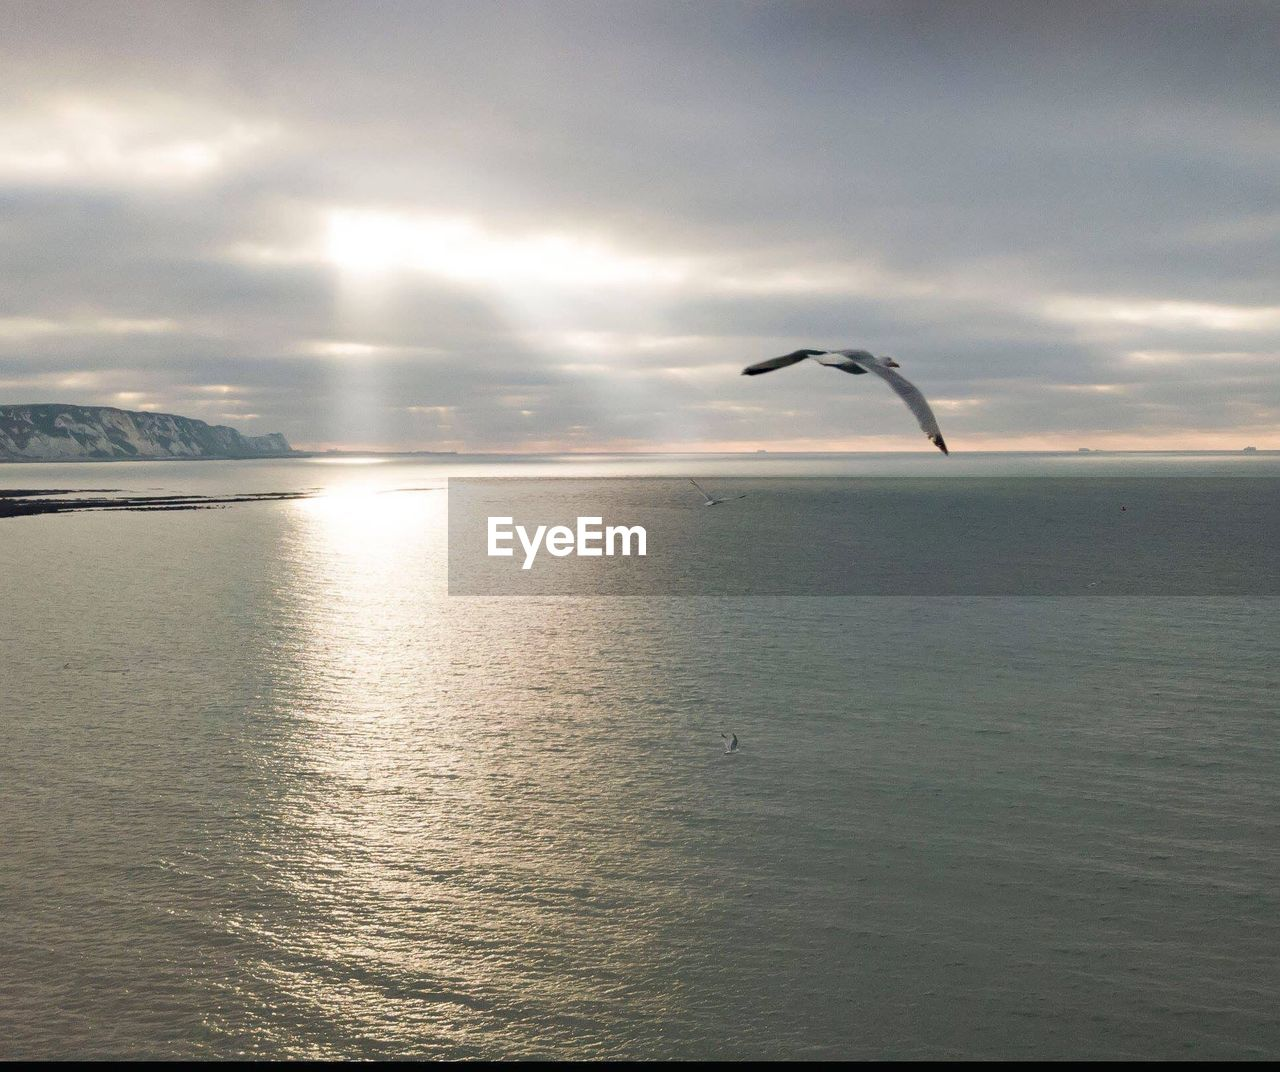 cloud - sky, sky, water, vertebrate, animal, animal themes, sea, bird, animals in the wild, animal wildlife, beauty in nature, flying, scenics - nature, one animal, nature, tranquil scene, no people, waterfront, tranquility, horizon over water, outdoors, seagull